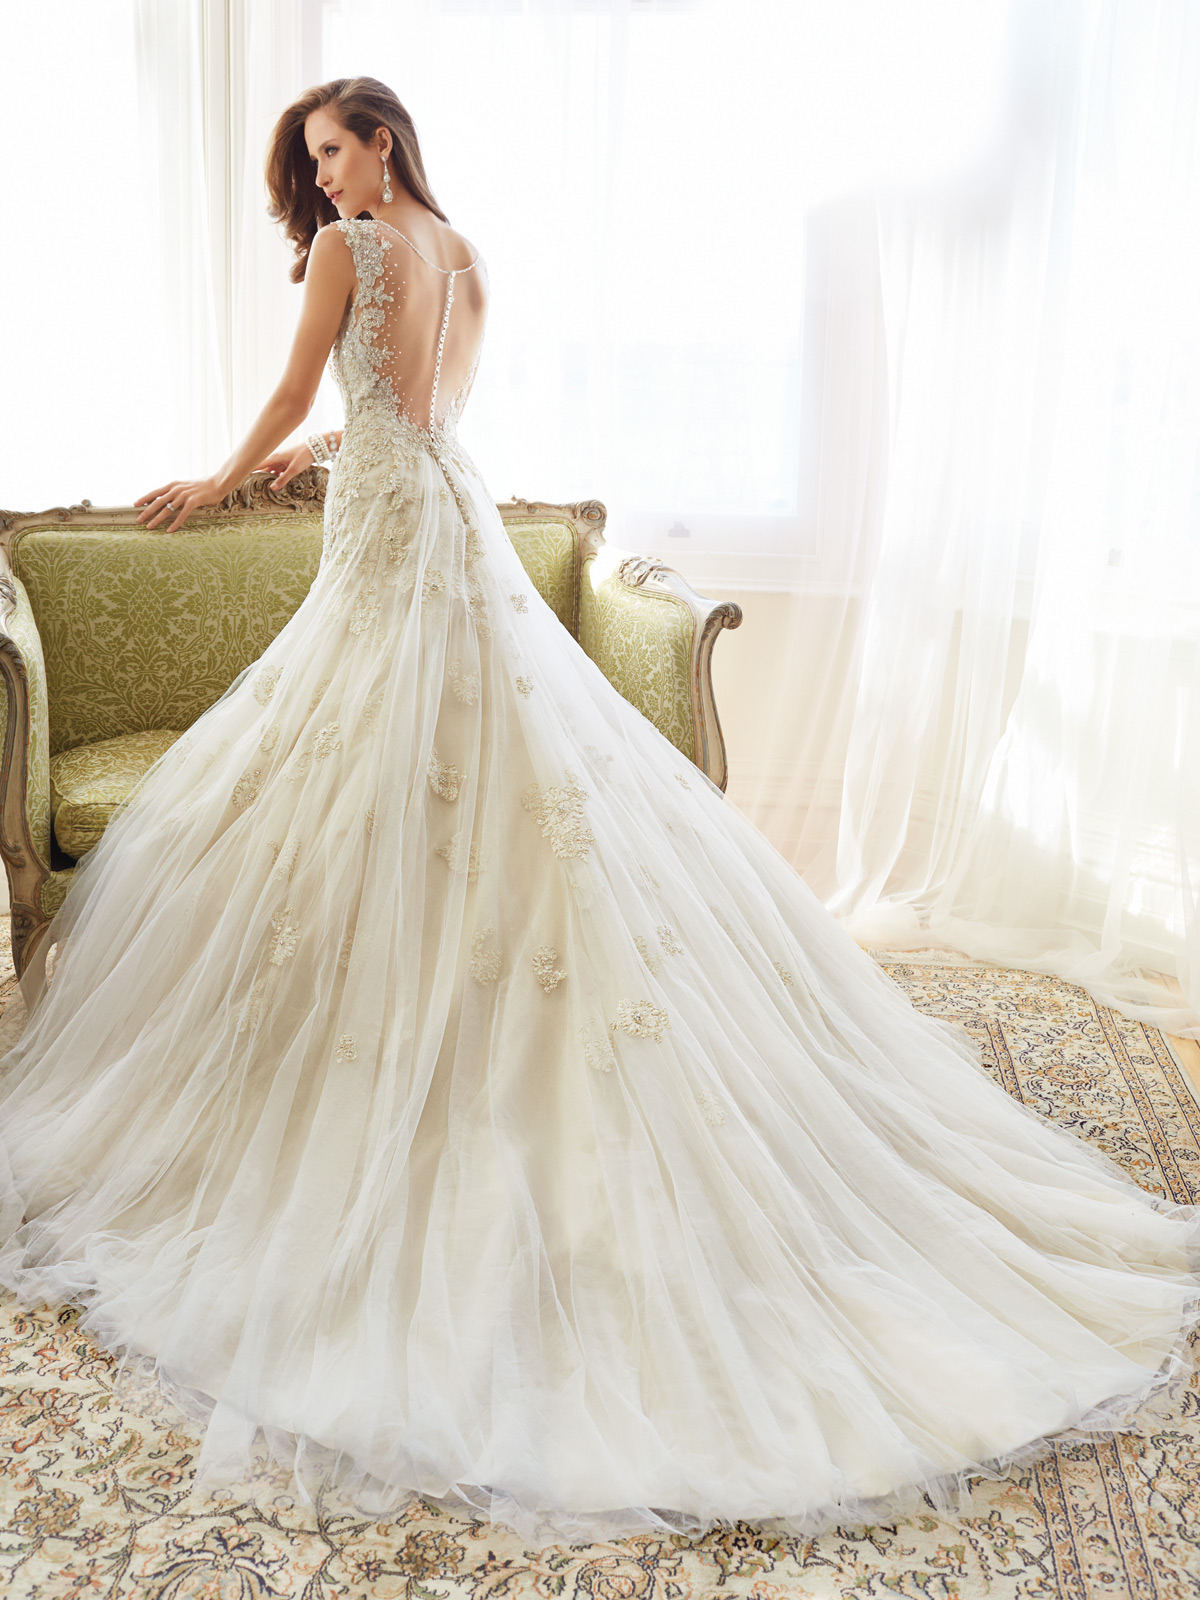 Sophie S Squishy Collection : Sophia Tolli Spring 2015 Collection